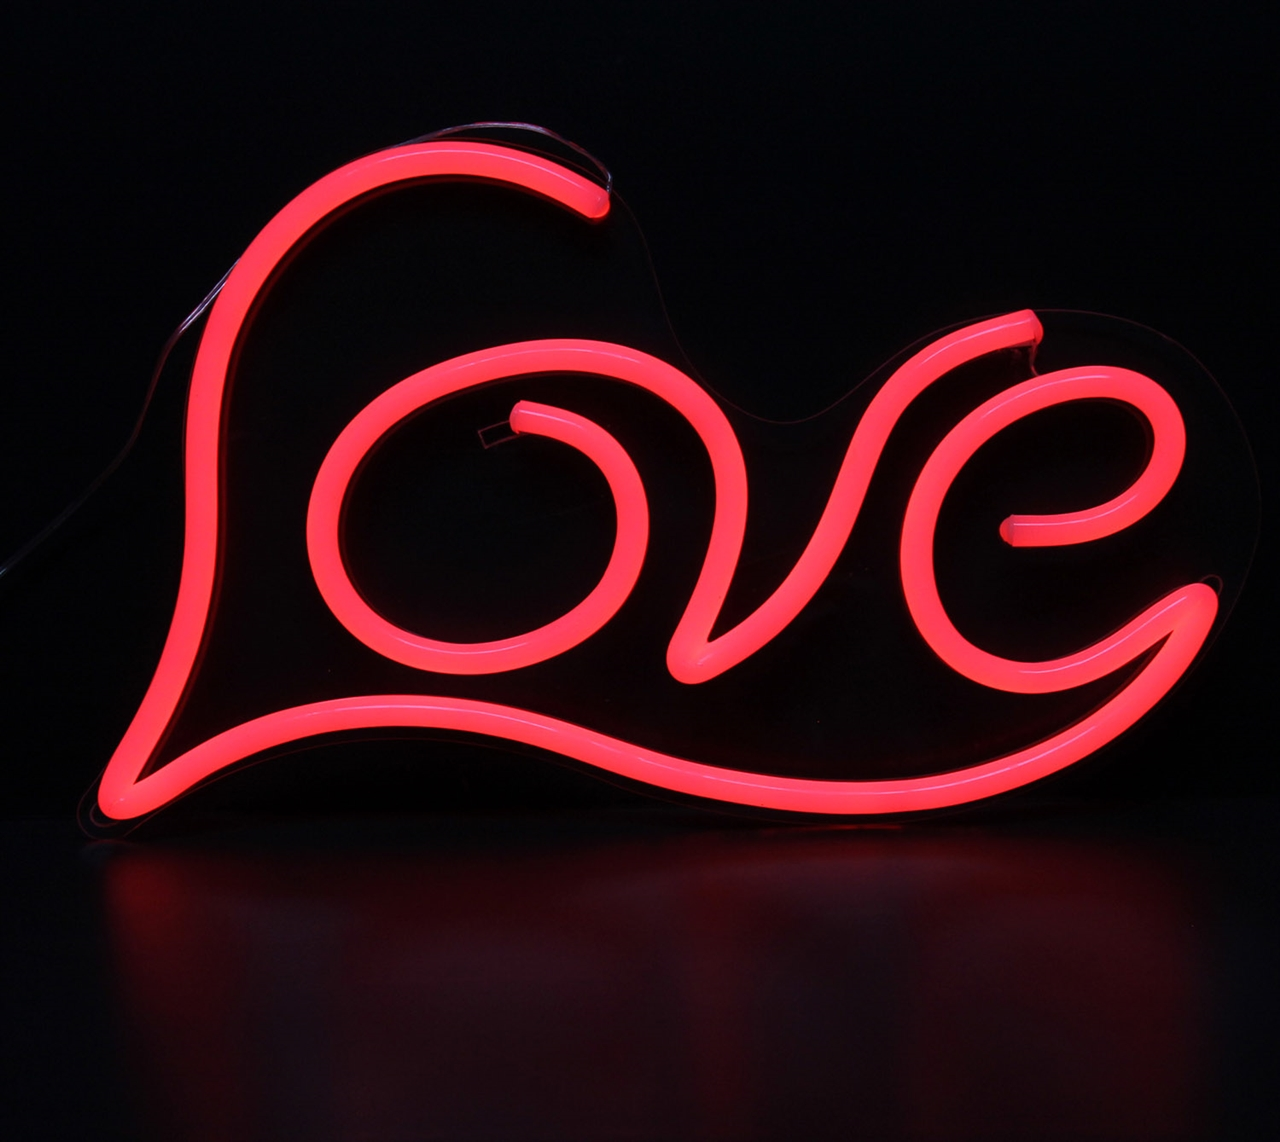 LED Neon Sign LOVE